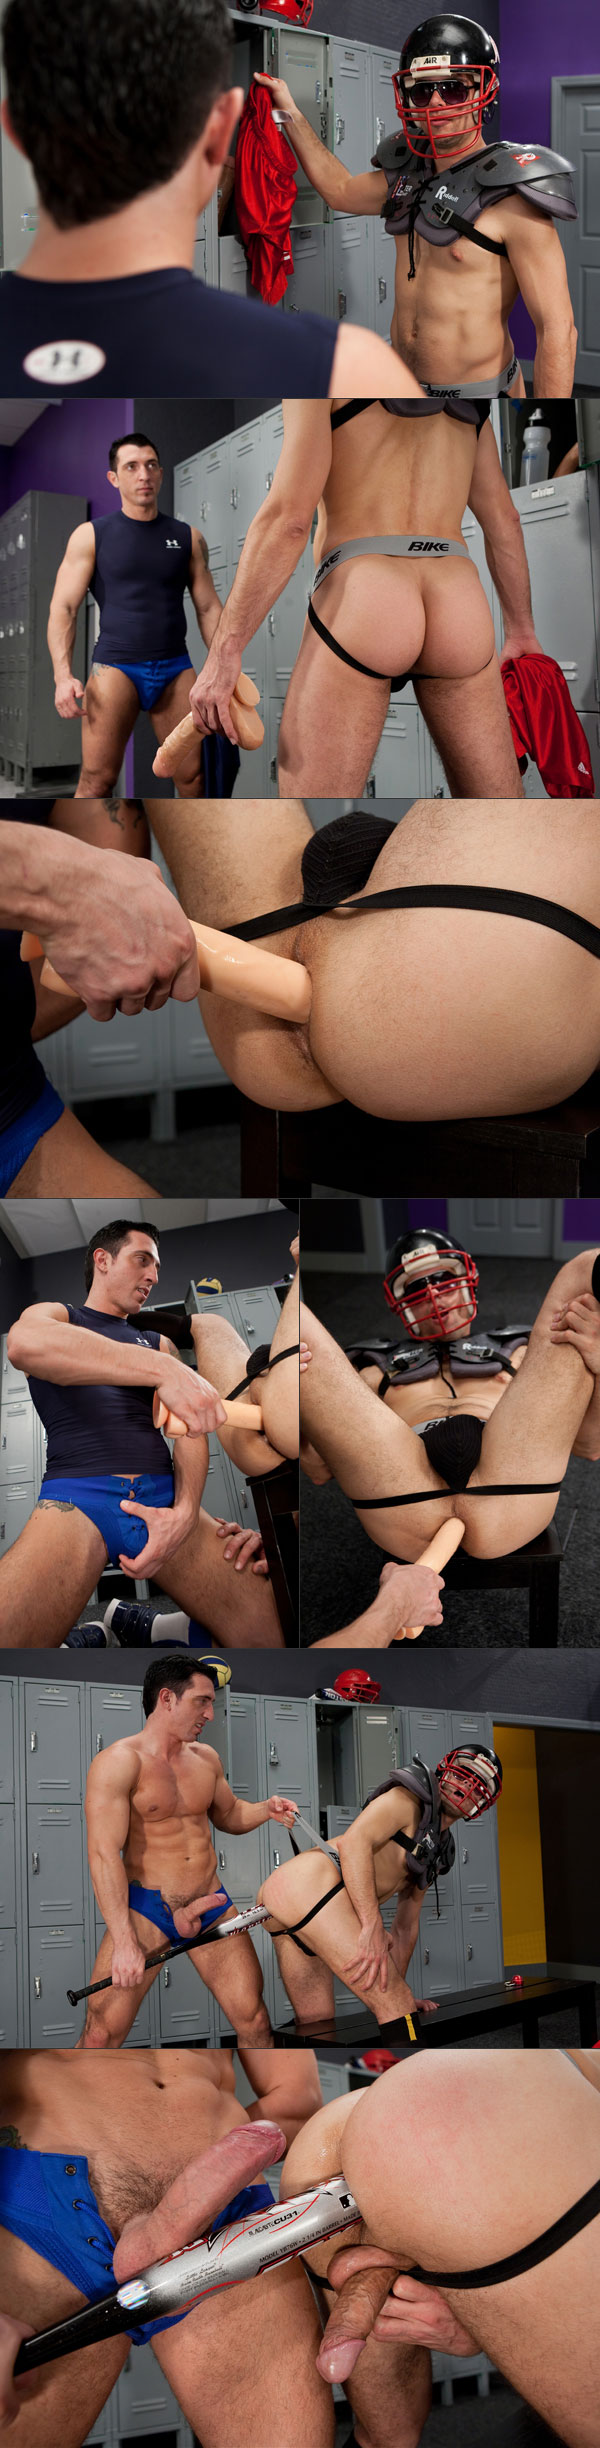 Ass play with Jimmy Durano and Jake Perry from Foul Play